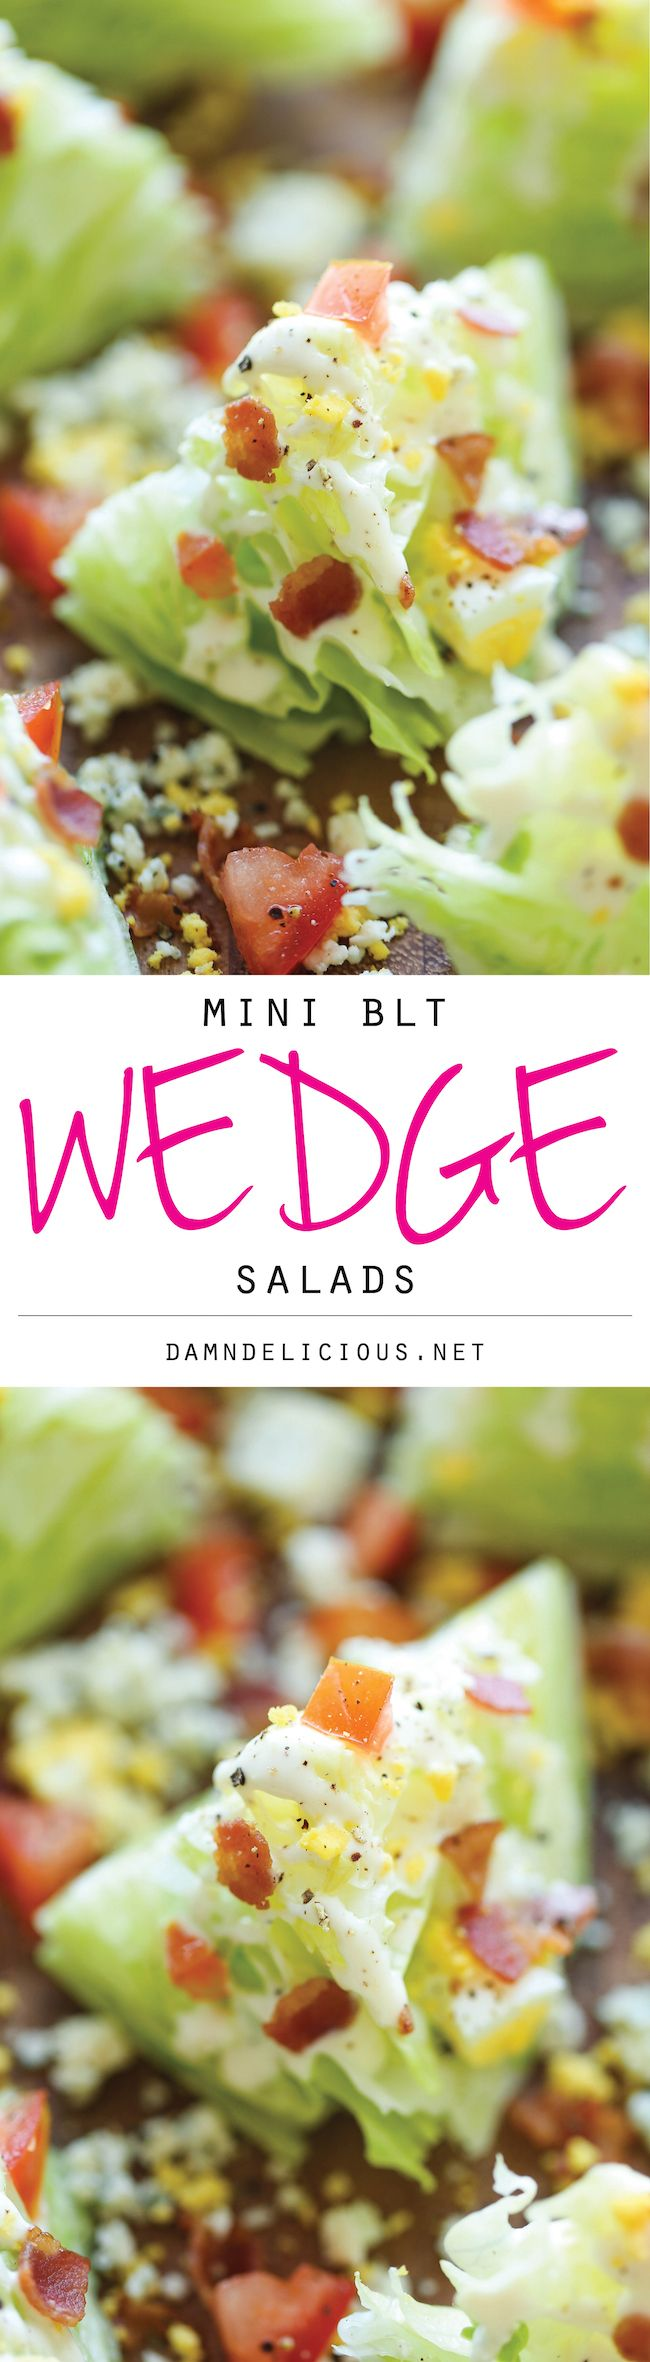 Mini BLT Wedge Salads - These mini salads with crisp bacon bits are perfect for easy serving and portion control. And miniature food always tastes better!